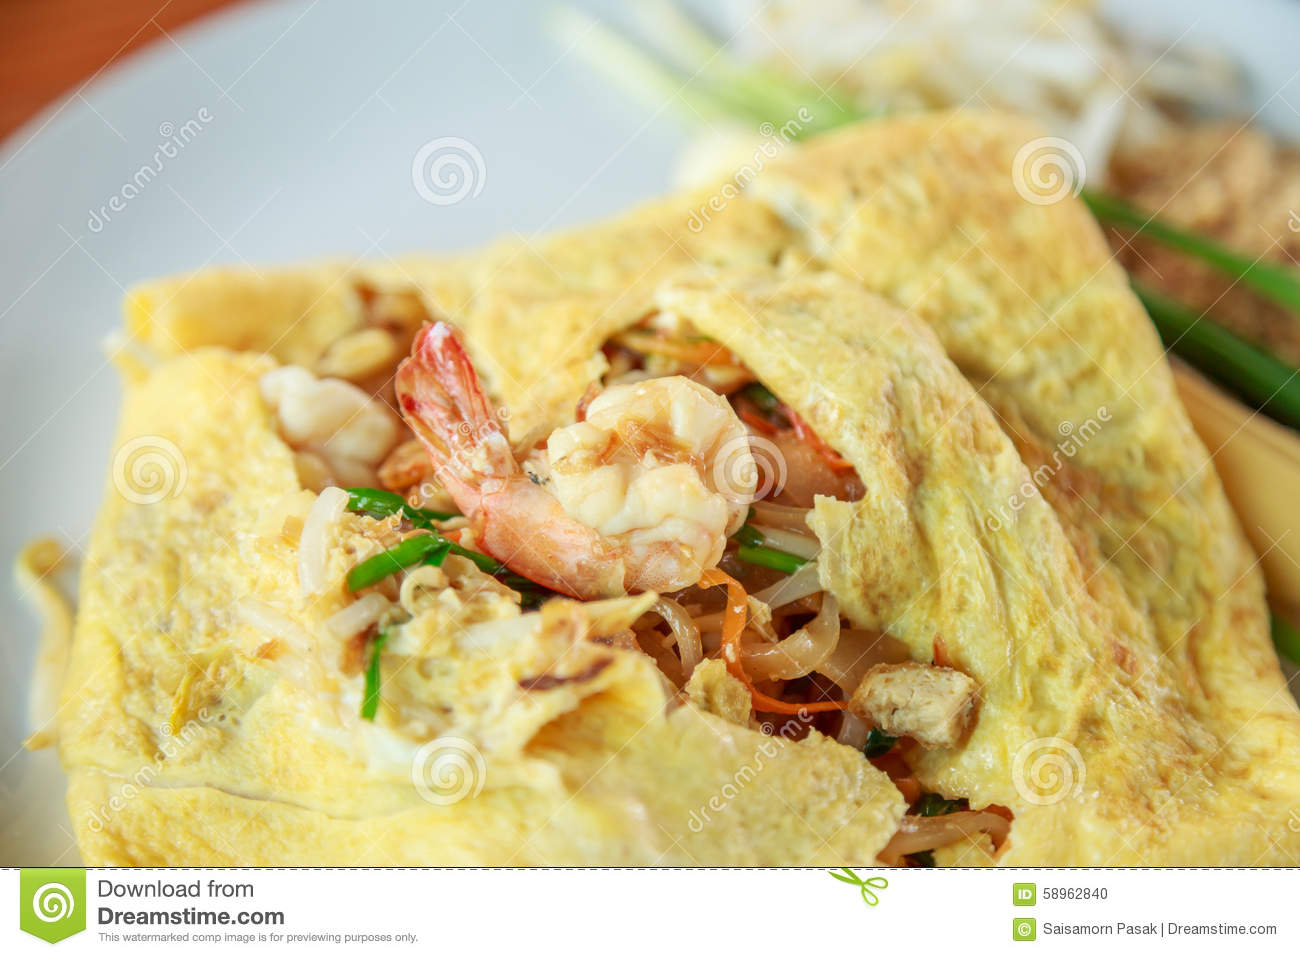 Stir-fried Rice Noodles With Shrimp And Wrap Eggs Stock Photo - Image ...